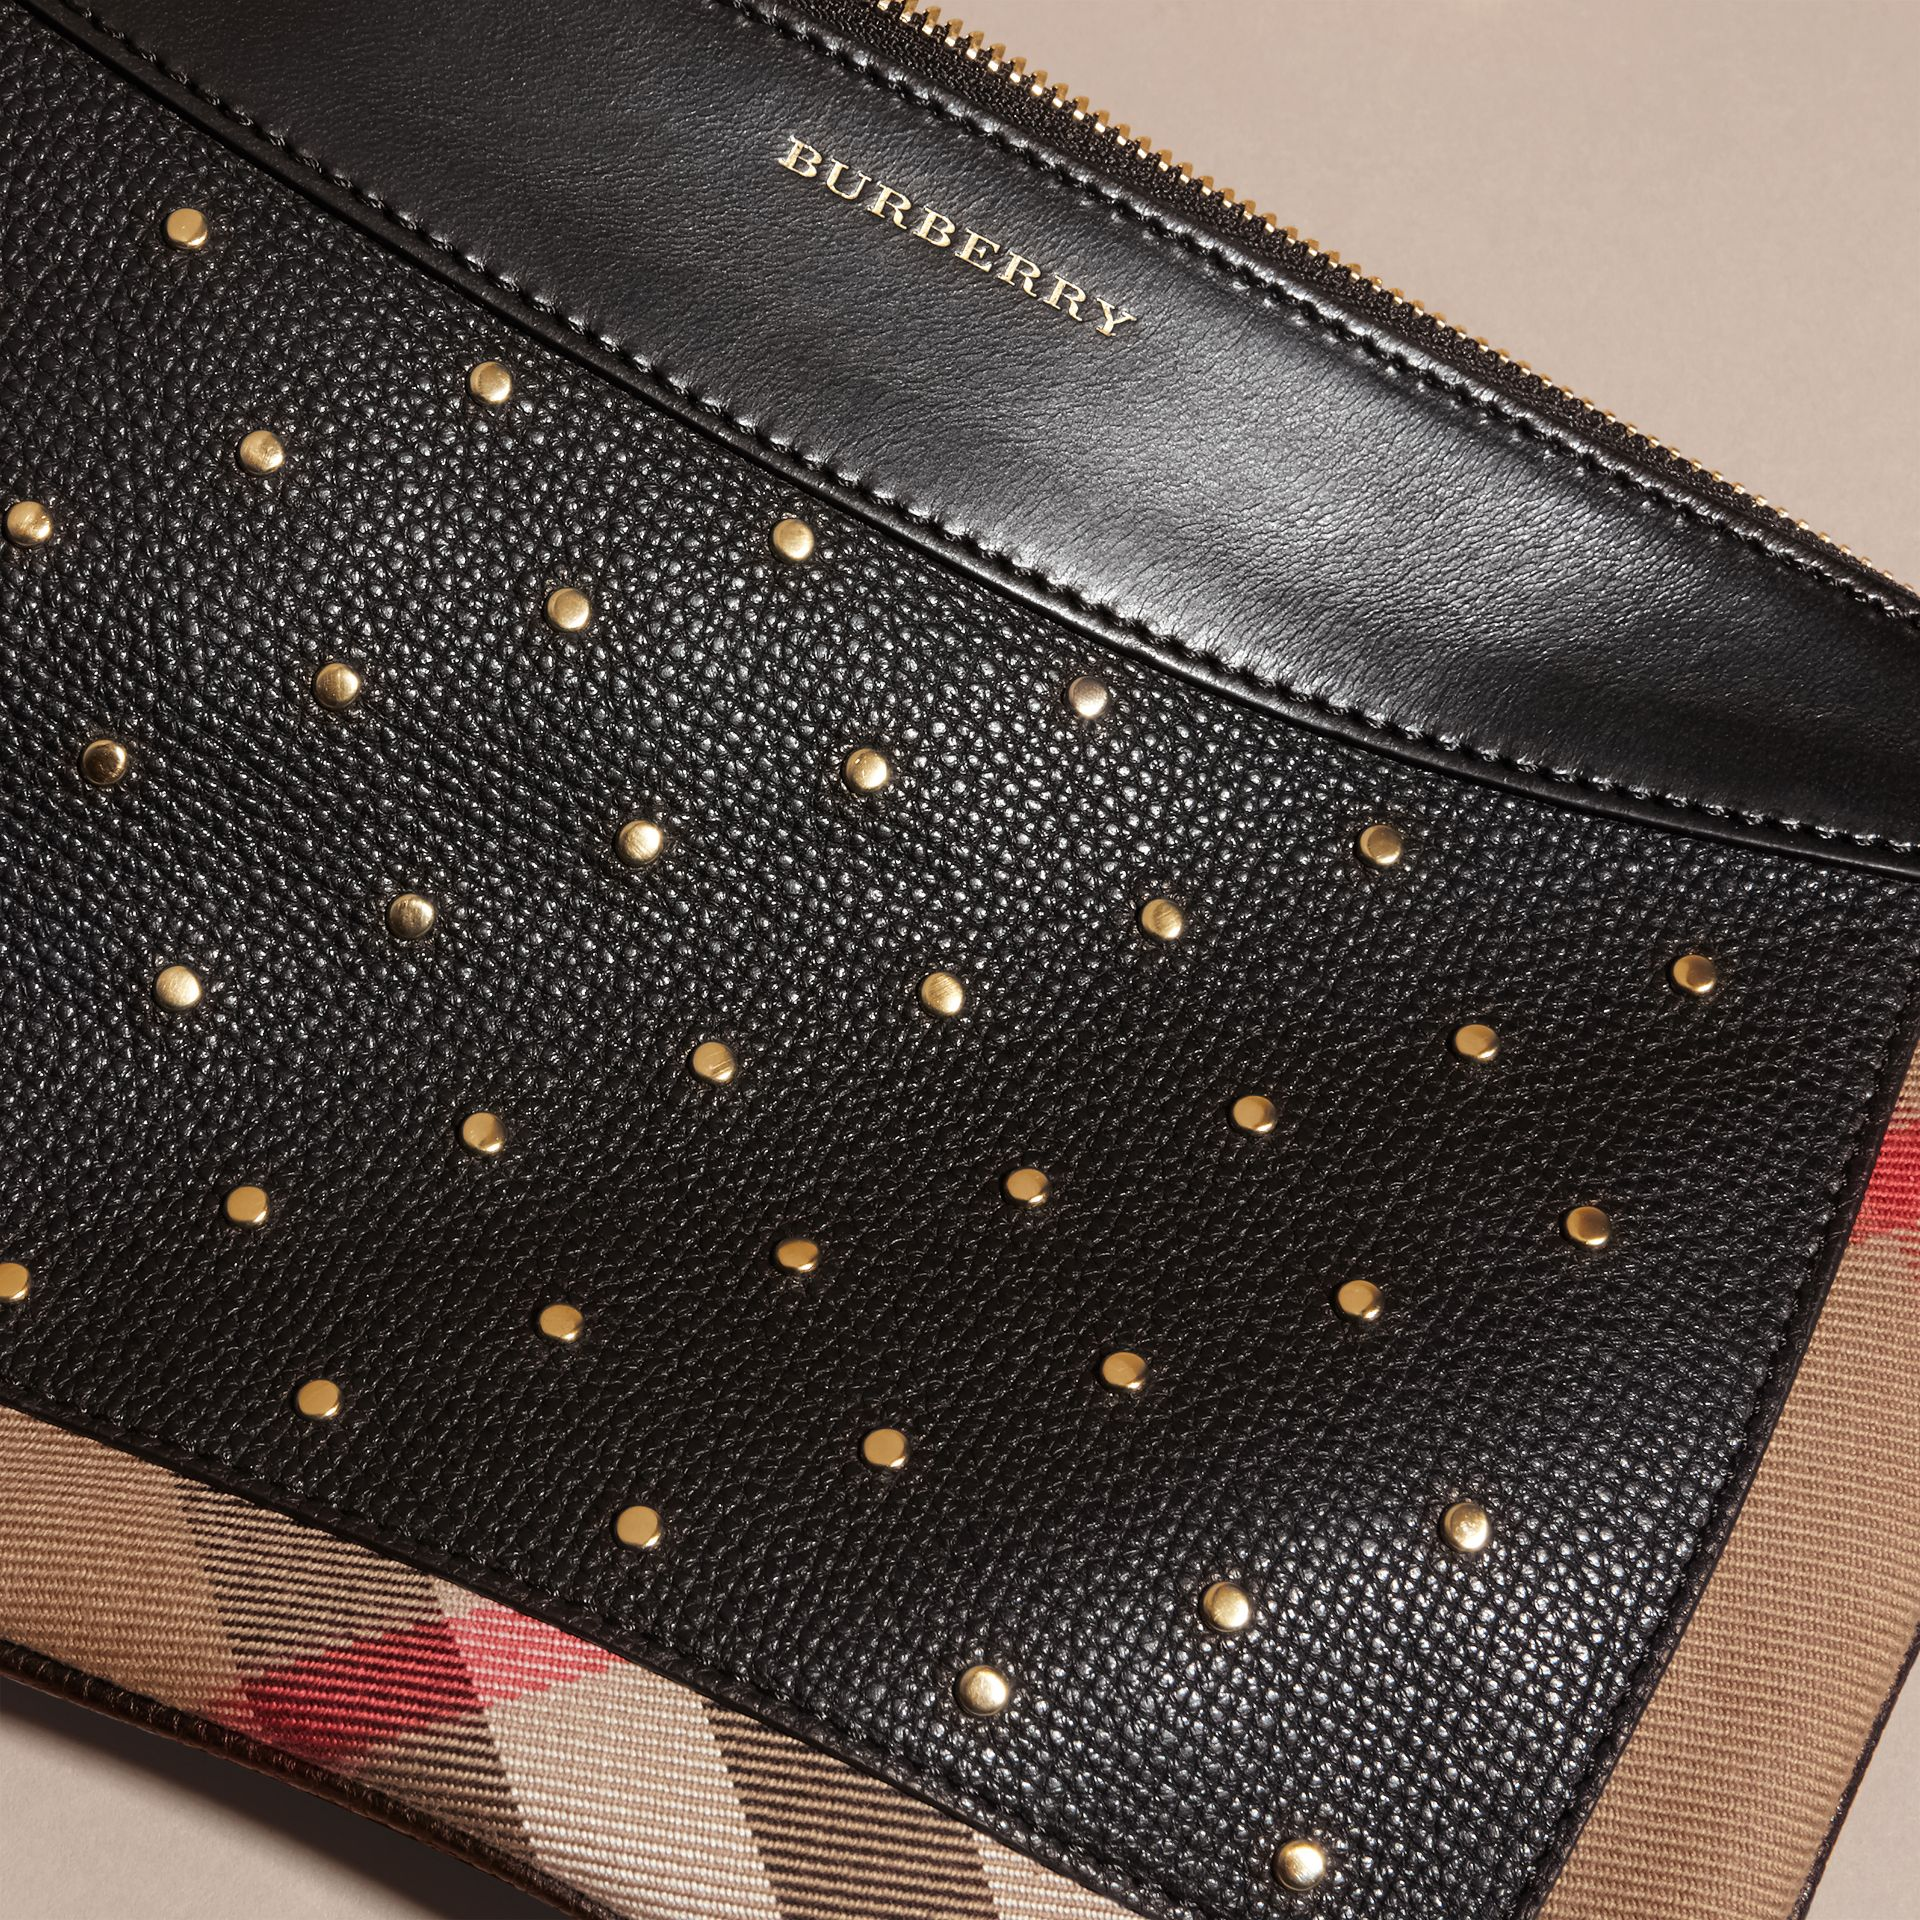 Black Riveted Leather and House Check Clutch Bag Black - gallery image 2